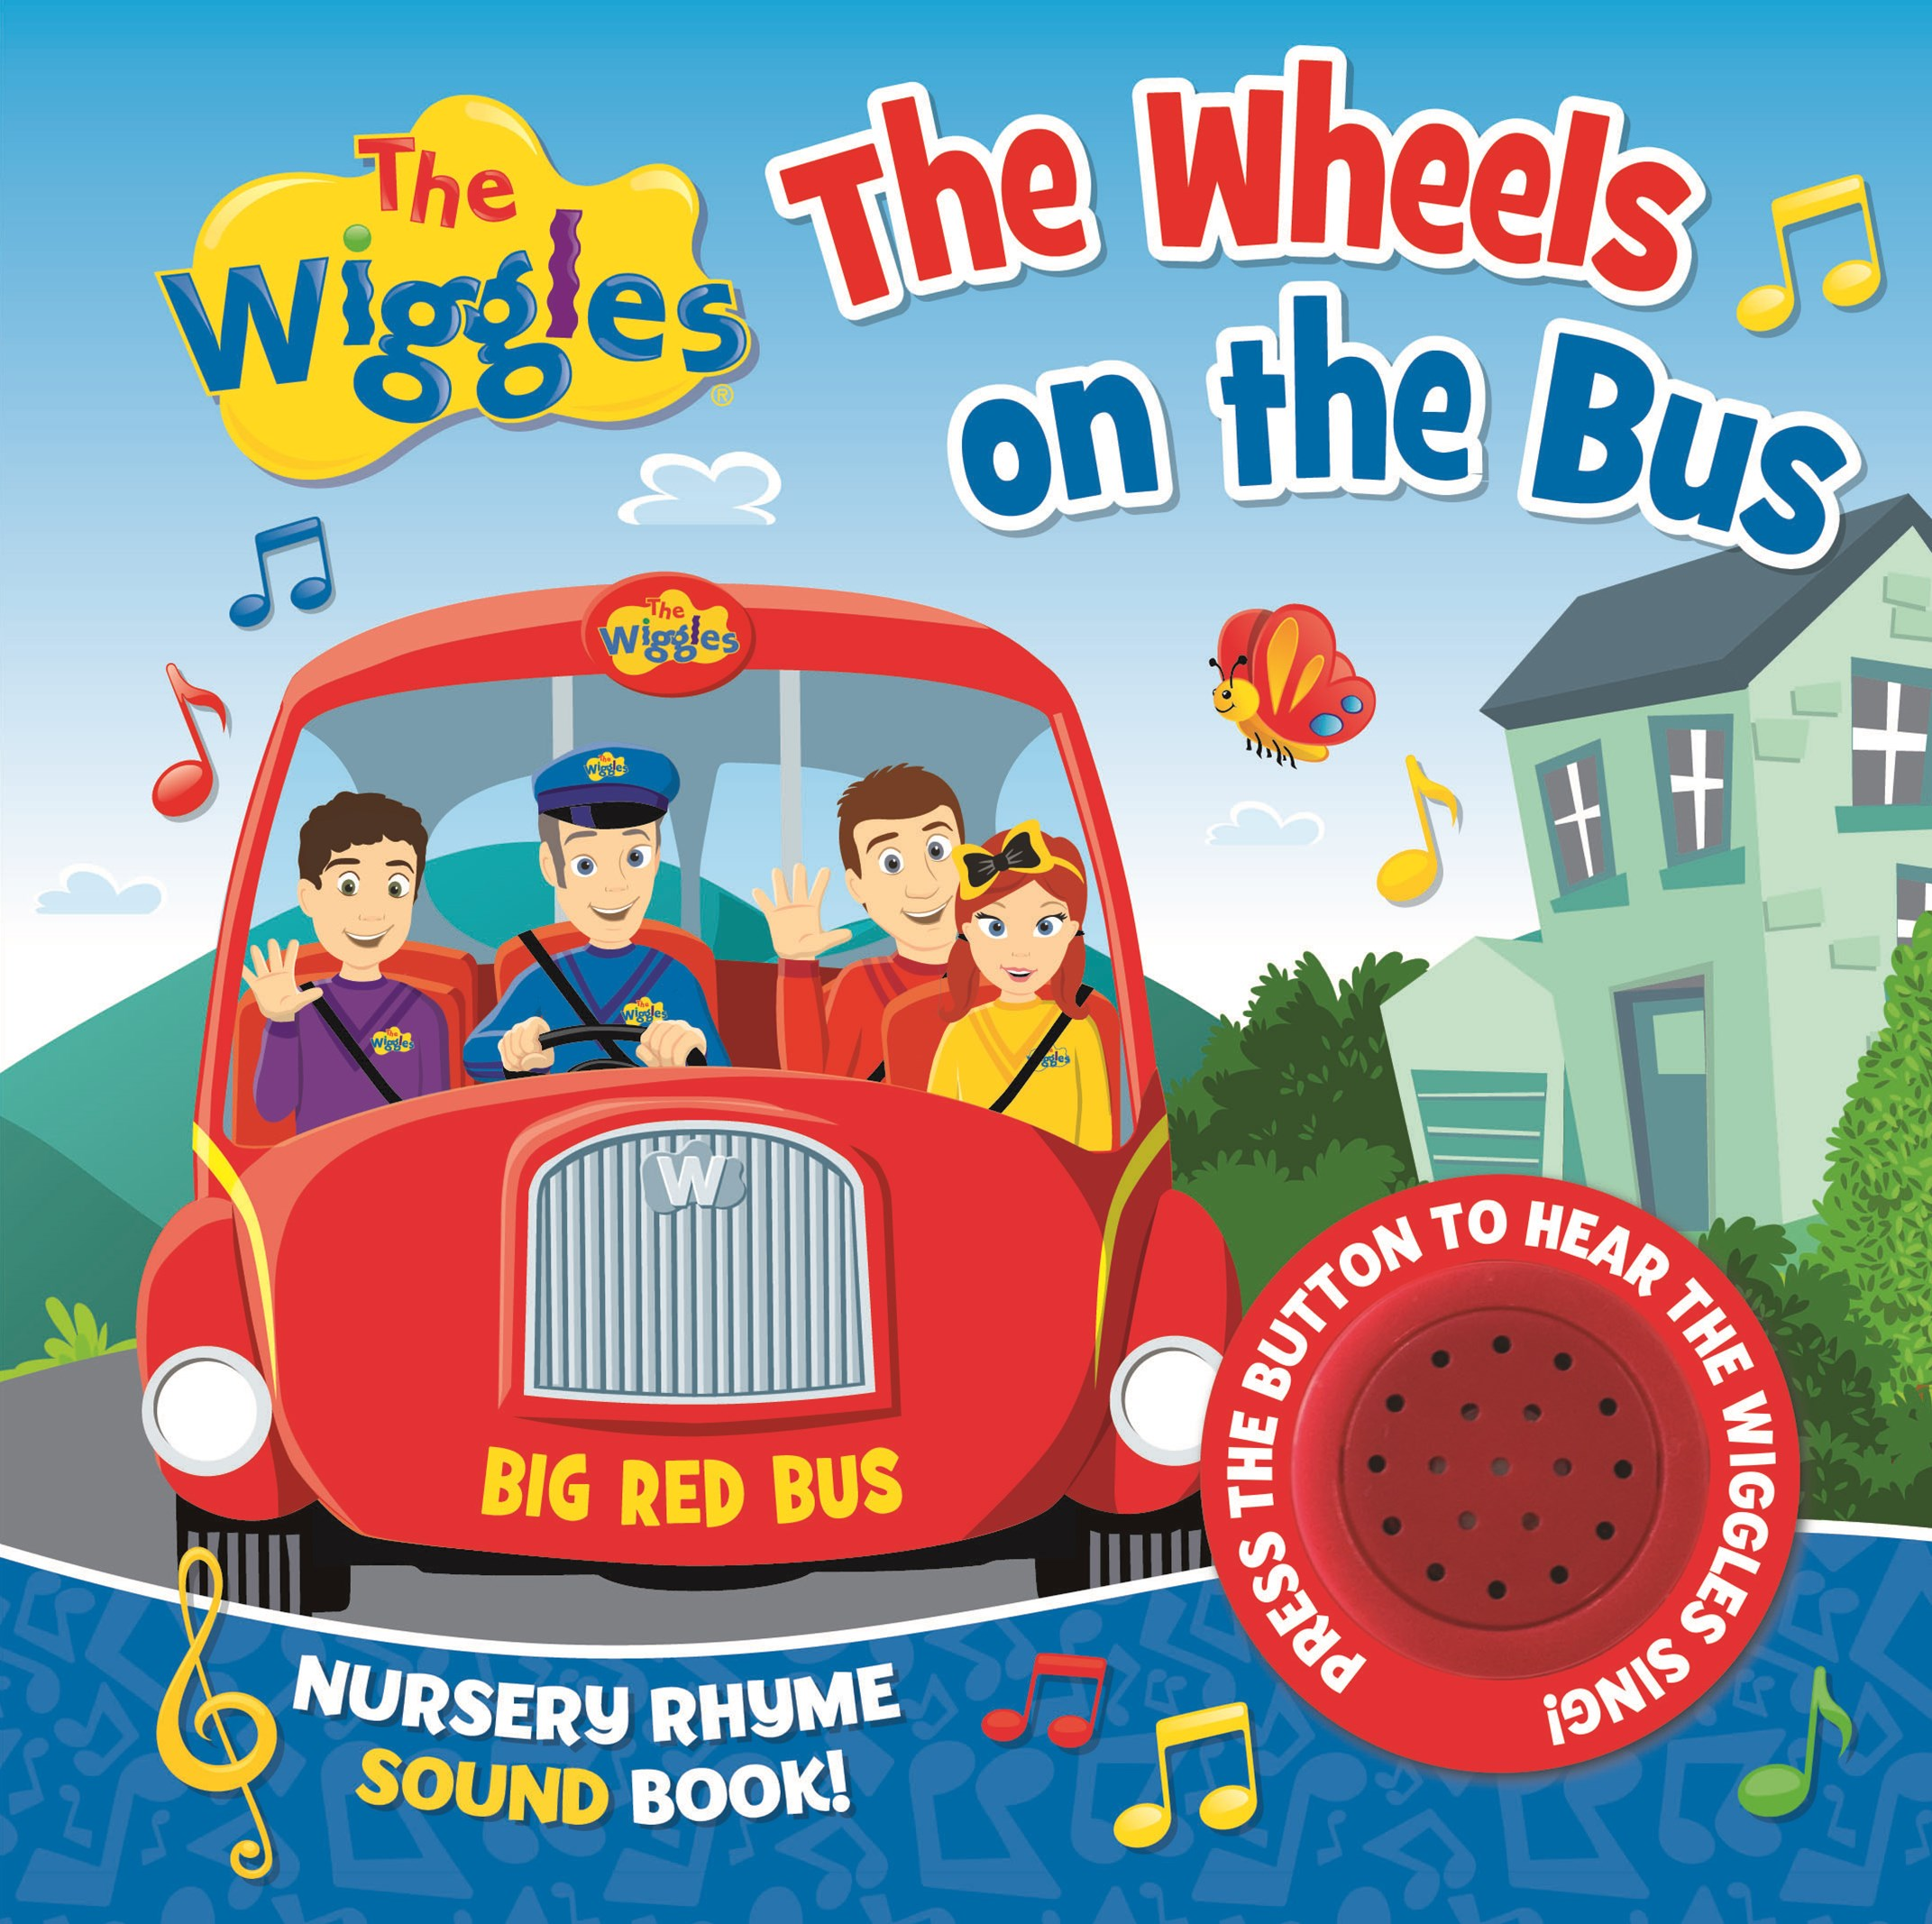 The Wiggles Nursery Rhyme Sound Book: The Wheels on